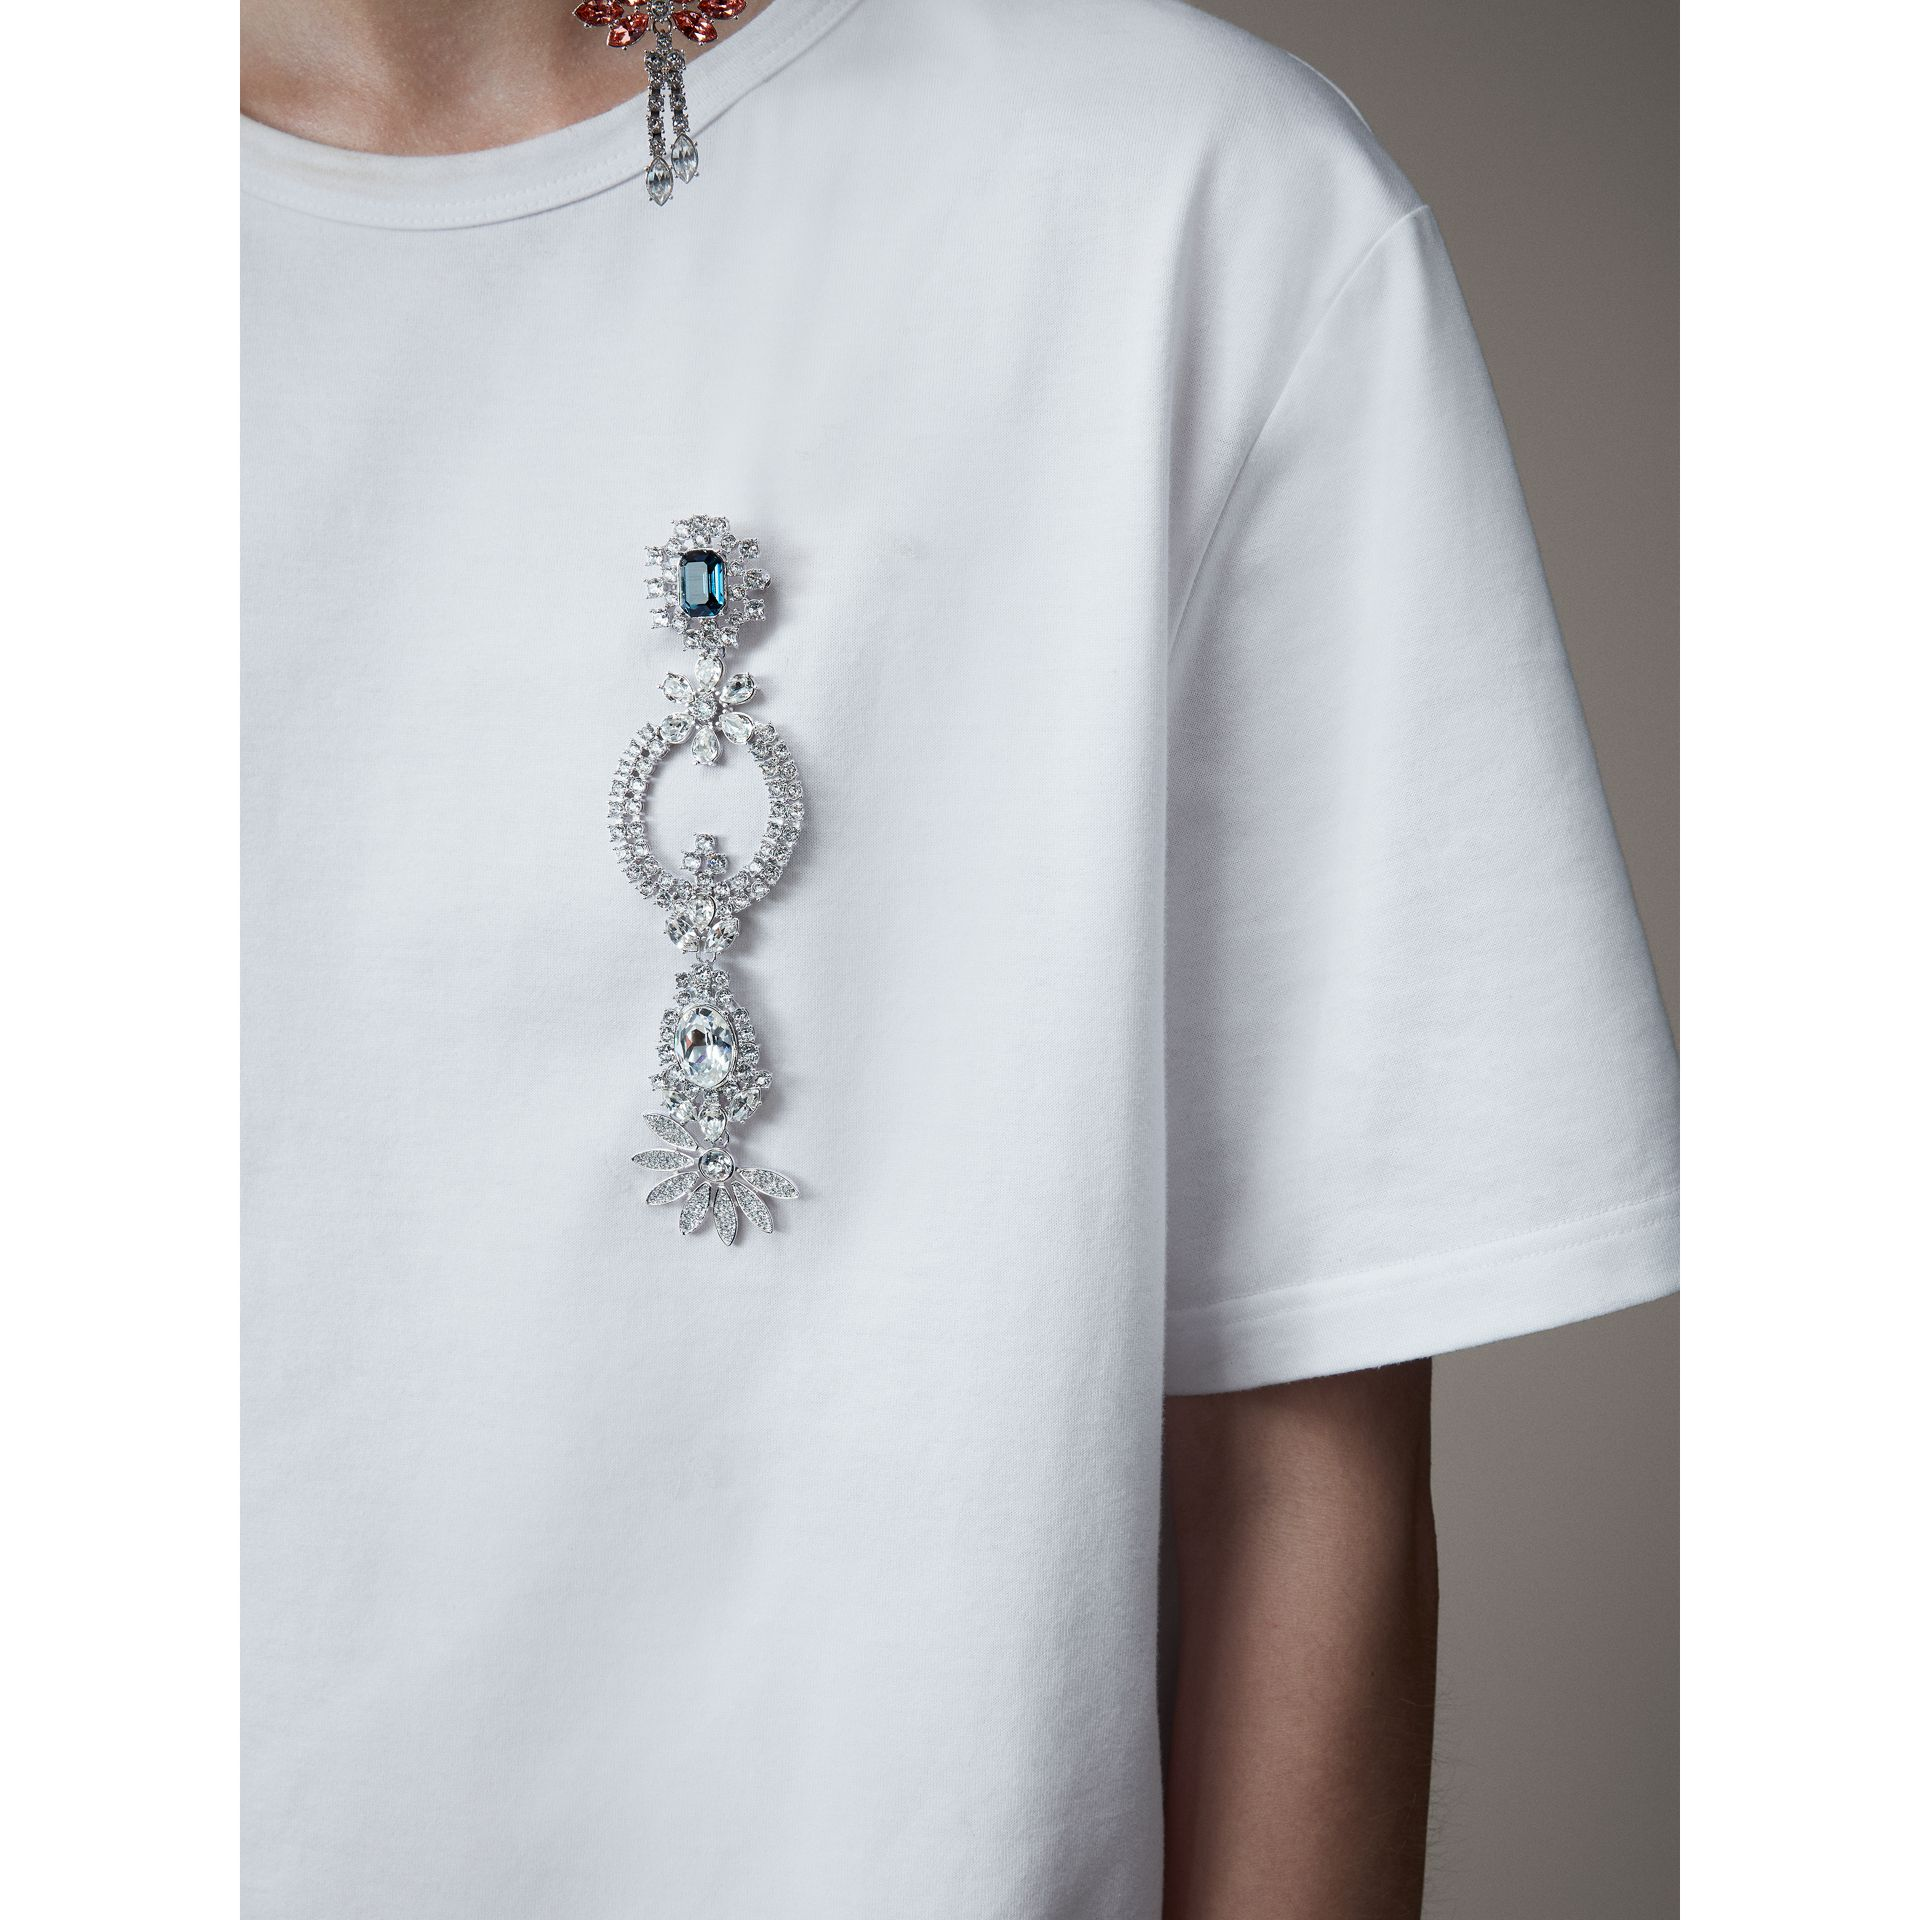 Boyfriend Fit T-shirt with Crystal Brooch in Optic White - Women | Burberry - gallery image 1